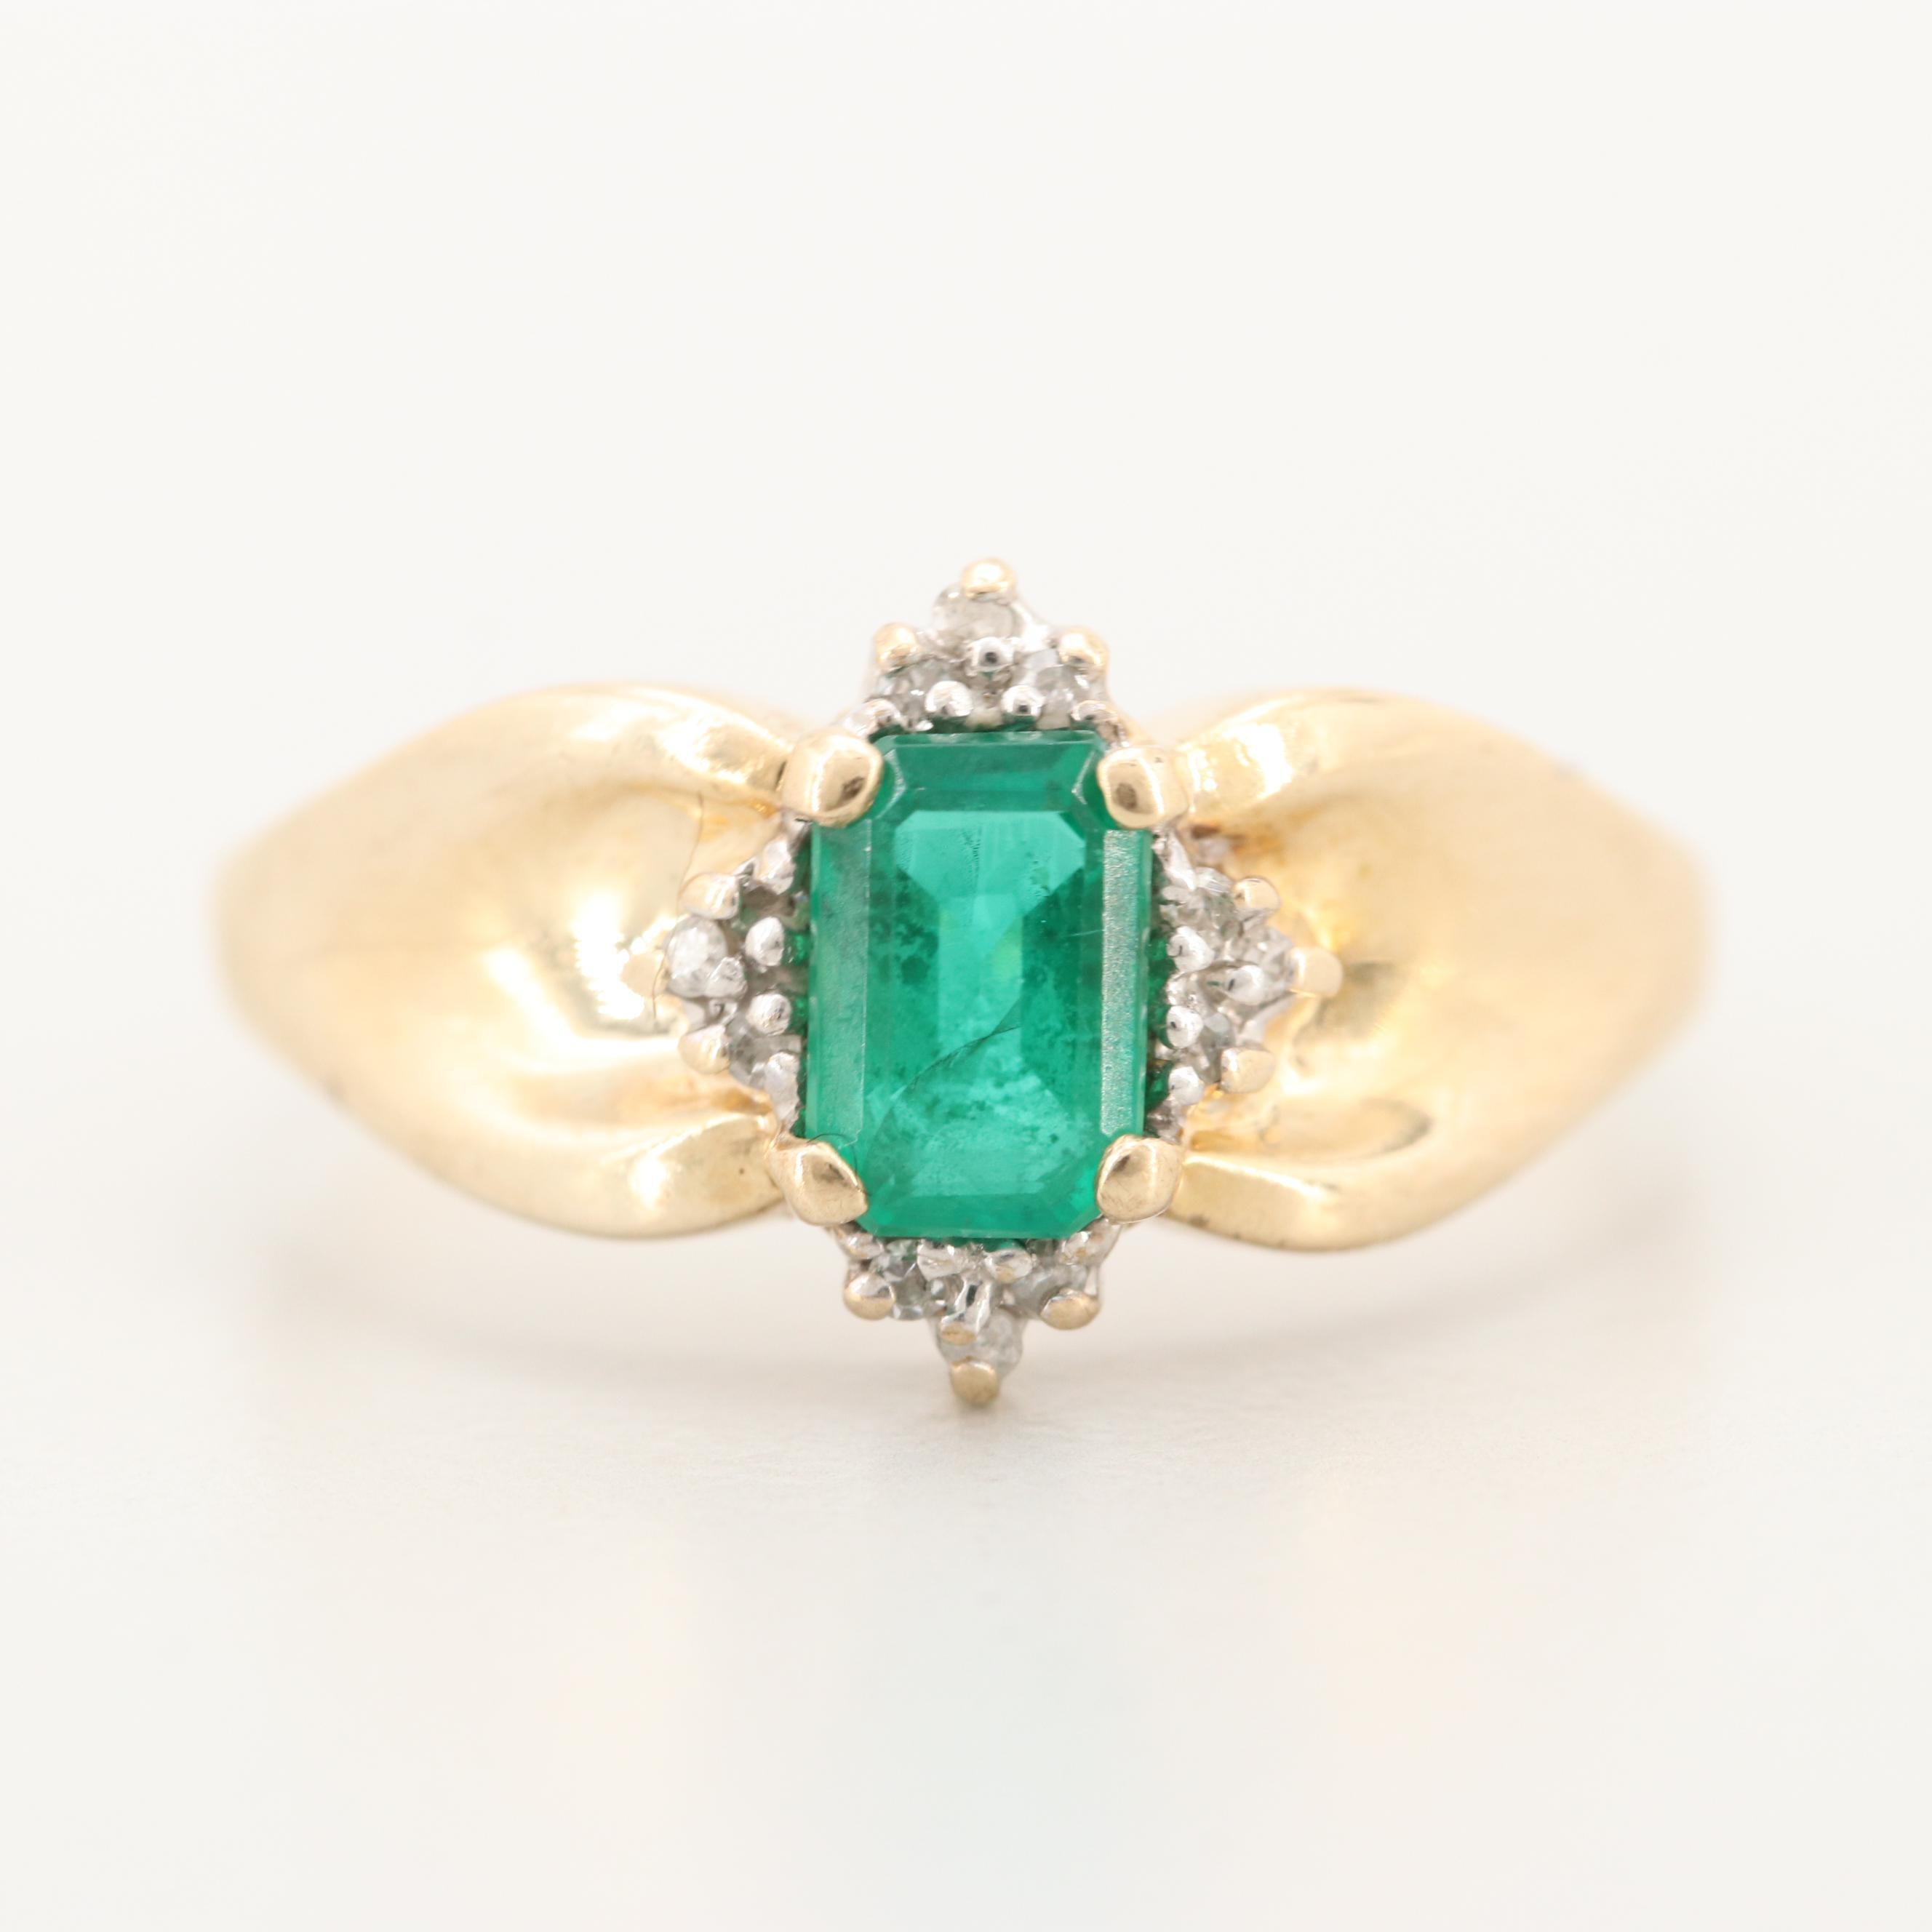 10K Yellow Gold Synthetic Emerald and Diamond Ring